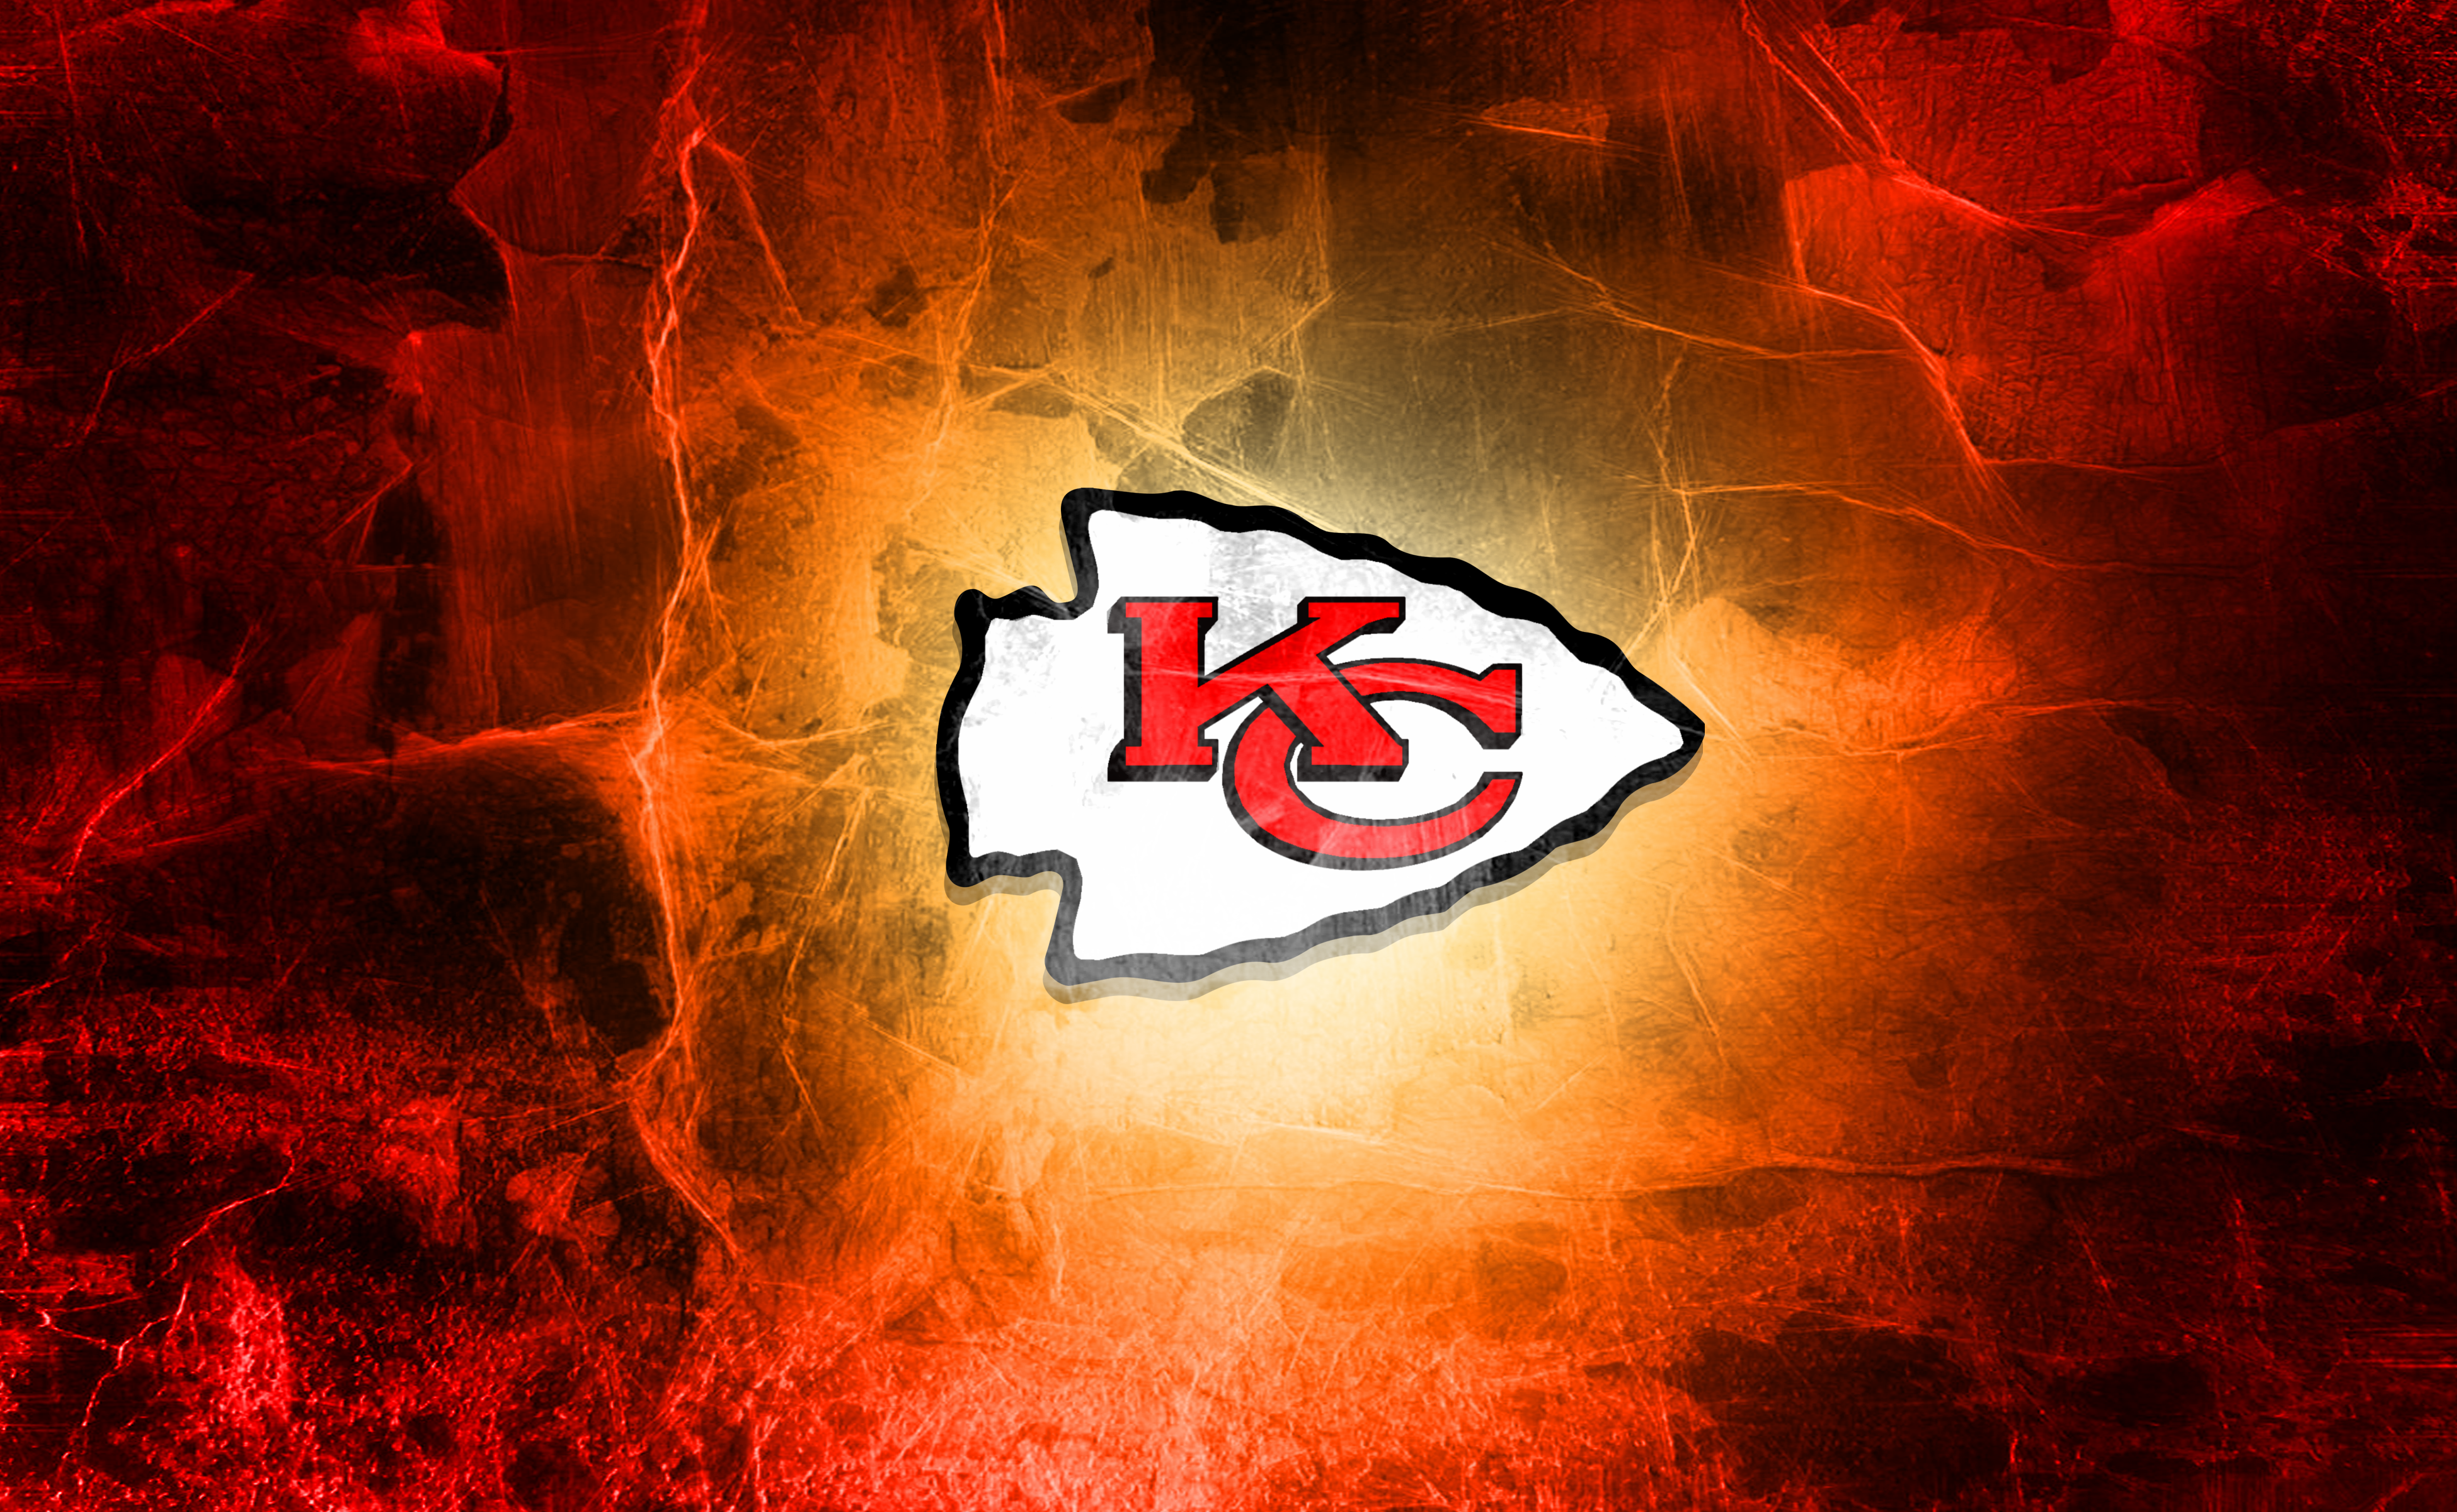 Desktop Images of Chiefs: 07.26.13 by Donovan Wagoner